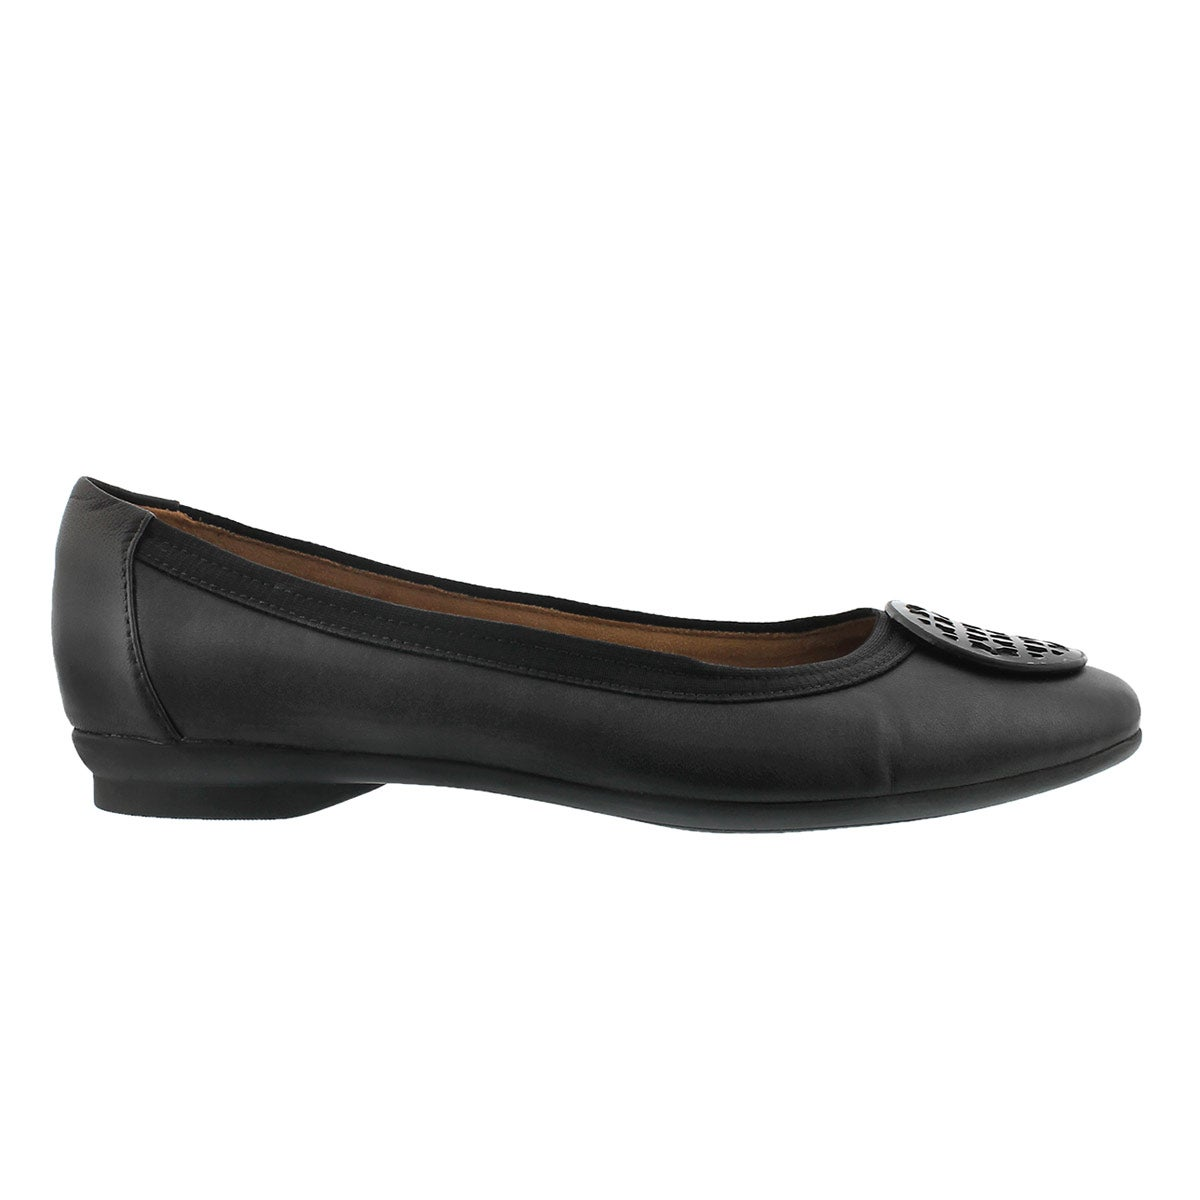 Lds Candra Blush black dress flat-WIDE